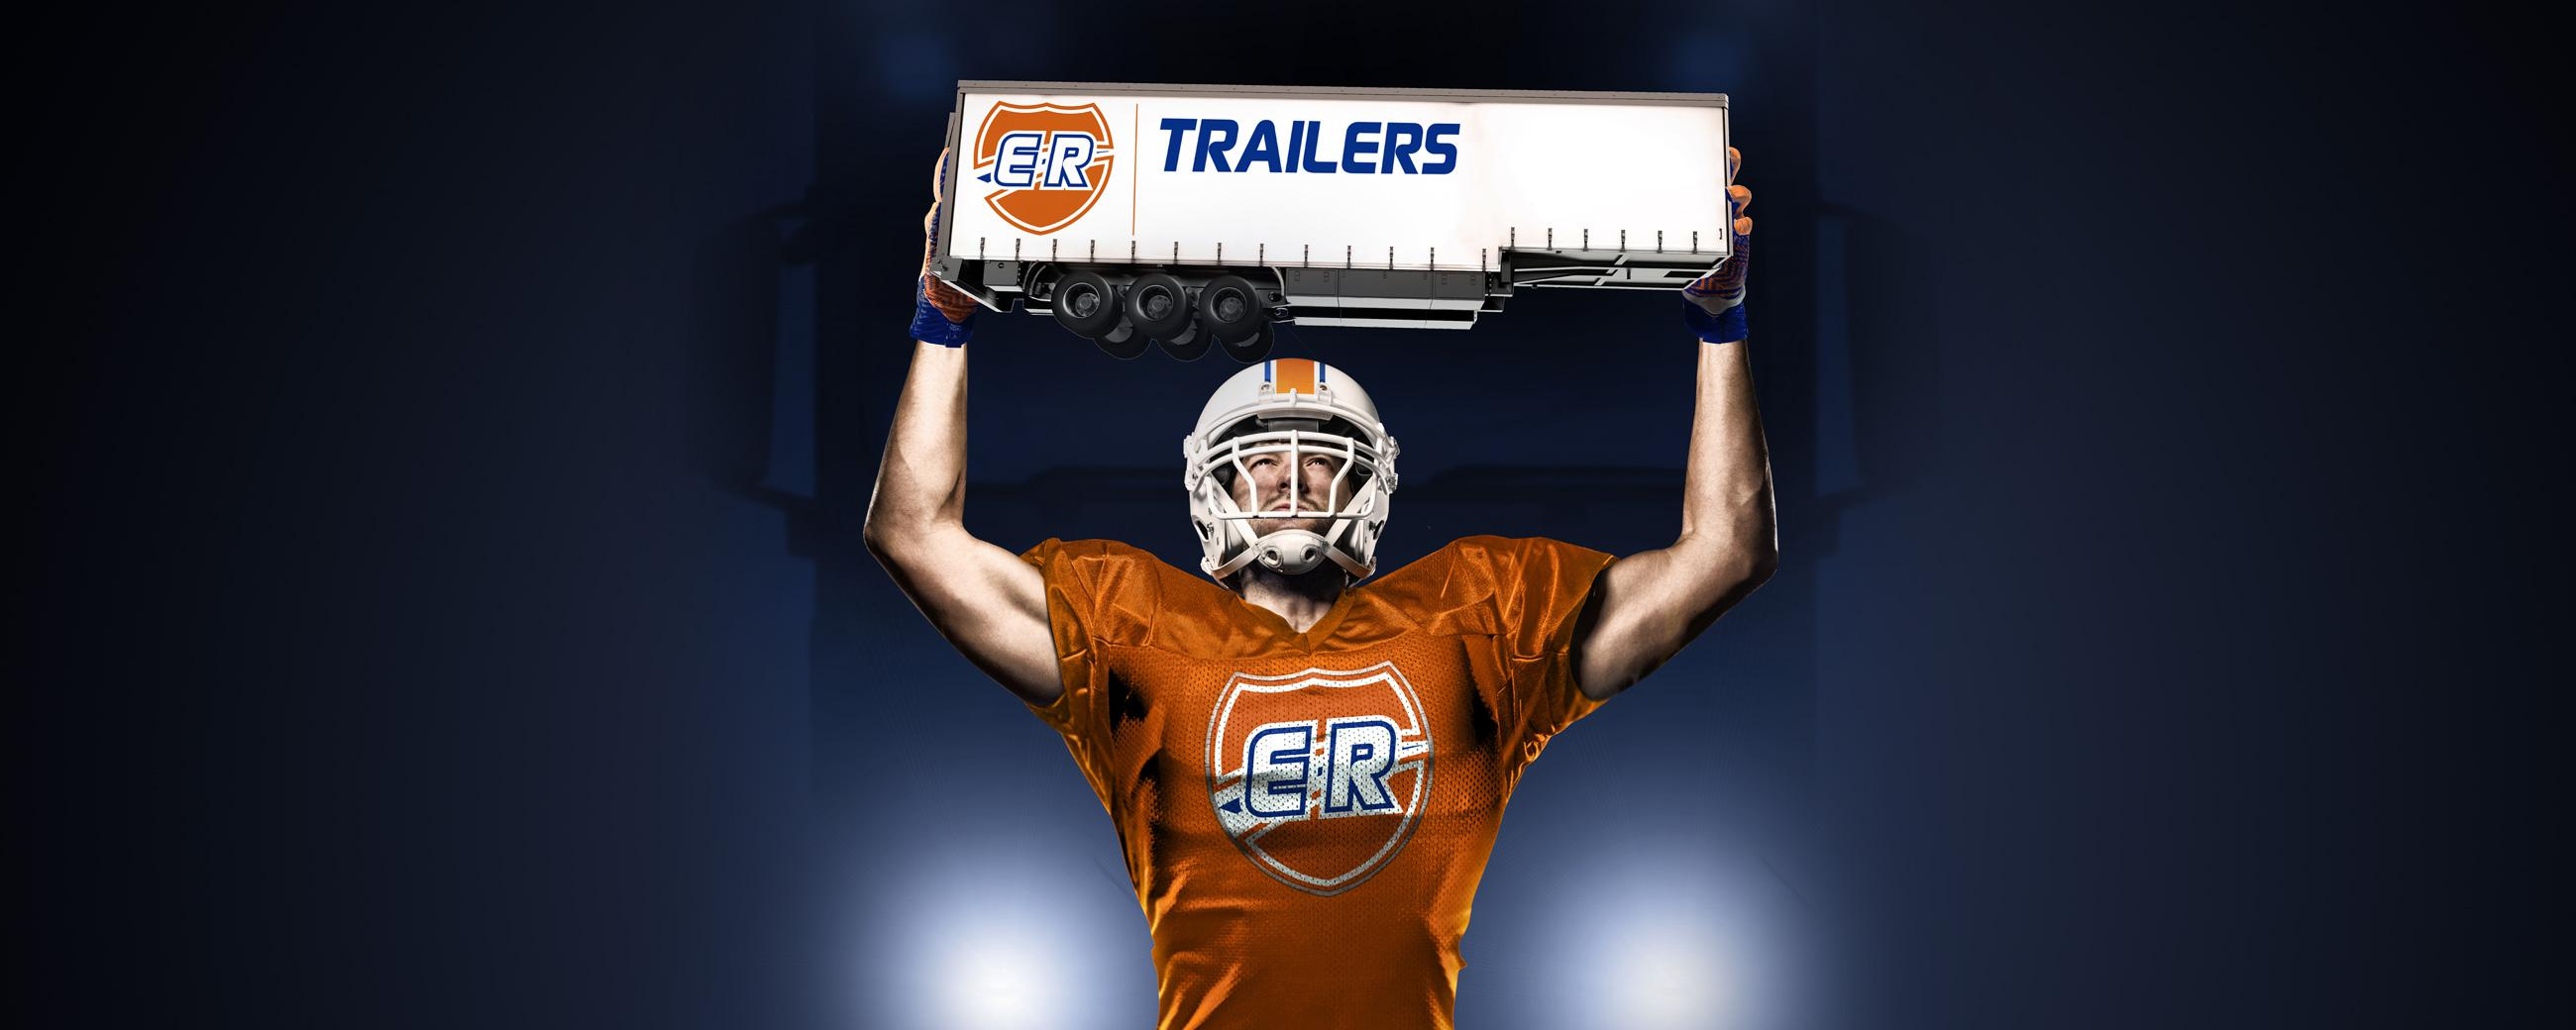 ER Trailers